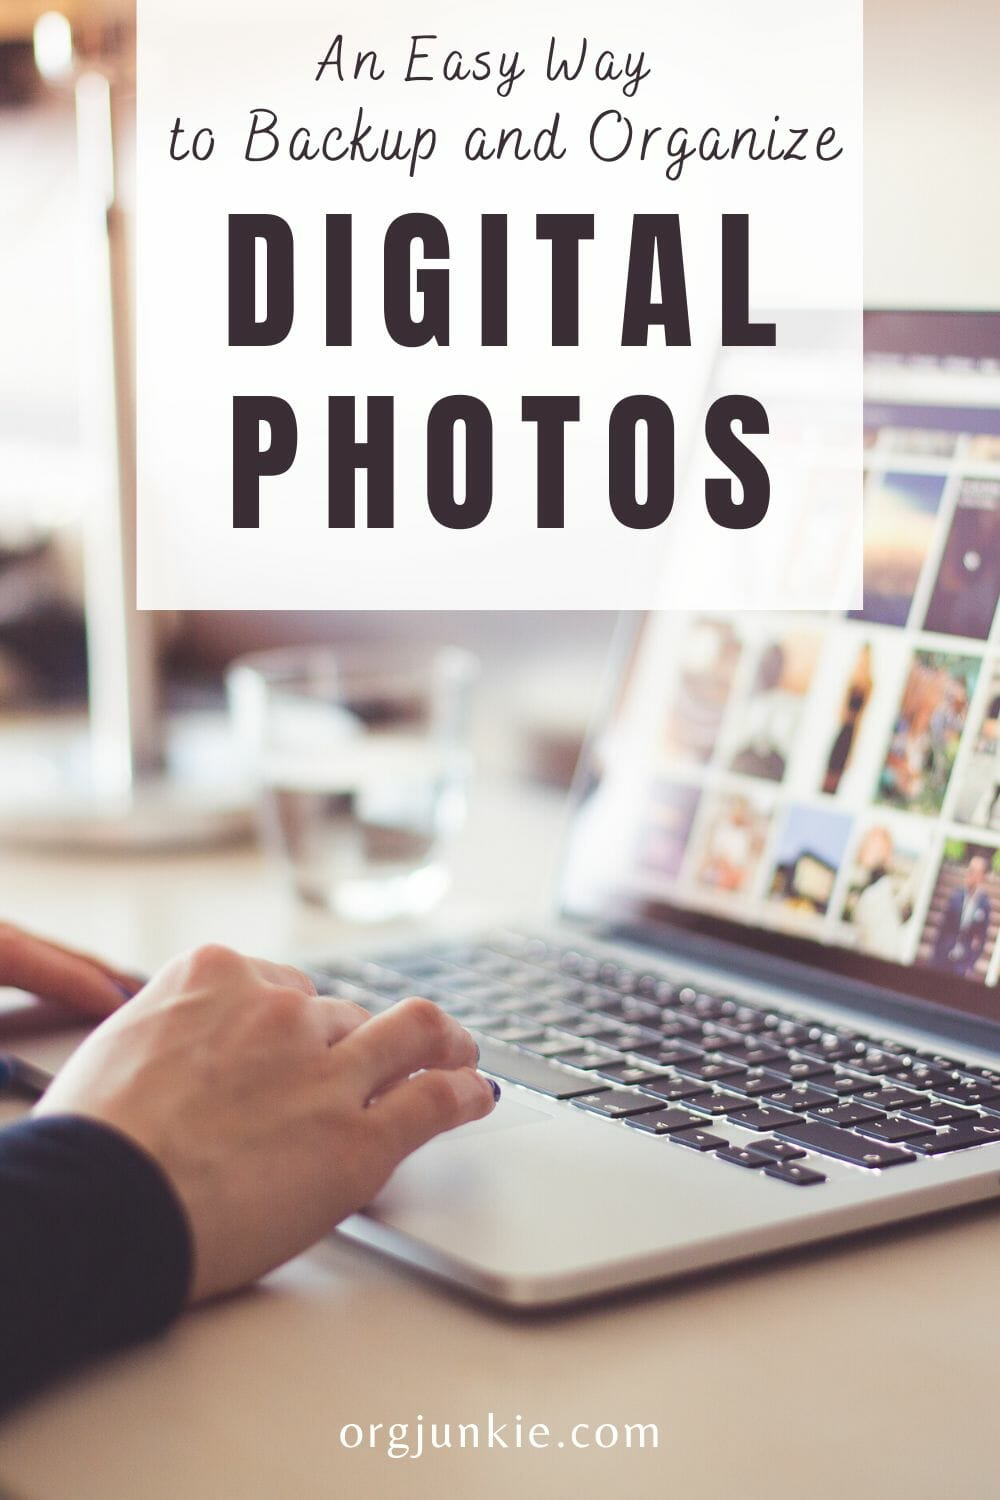 An Easy Way To Backup and Organize Digital Photos at I'm an Organizing Junkie blog